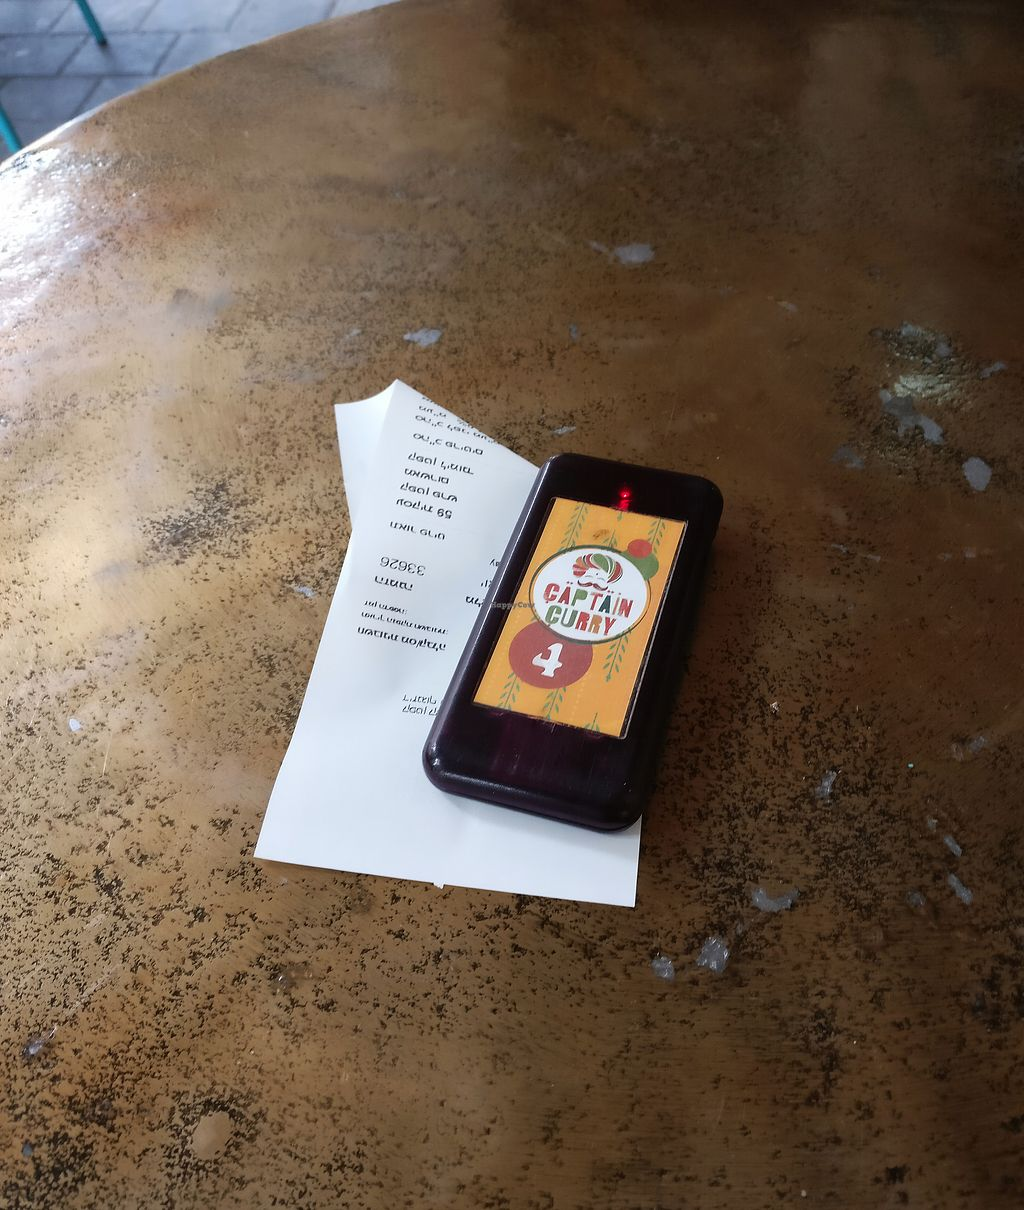 """Photo of CLOSED: Captain Curry  by <a href=""""/members/profile/KarinKoala"""">KarinKoala</a> <br/>you get a small remote control that tell you when your food is ready (the wonders of technology)  <br/> January 17, 2018  - <a href='/contact/abuse/image/106027/347614'>Report</a>"""